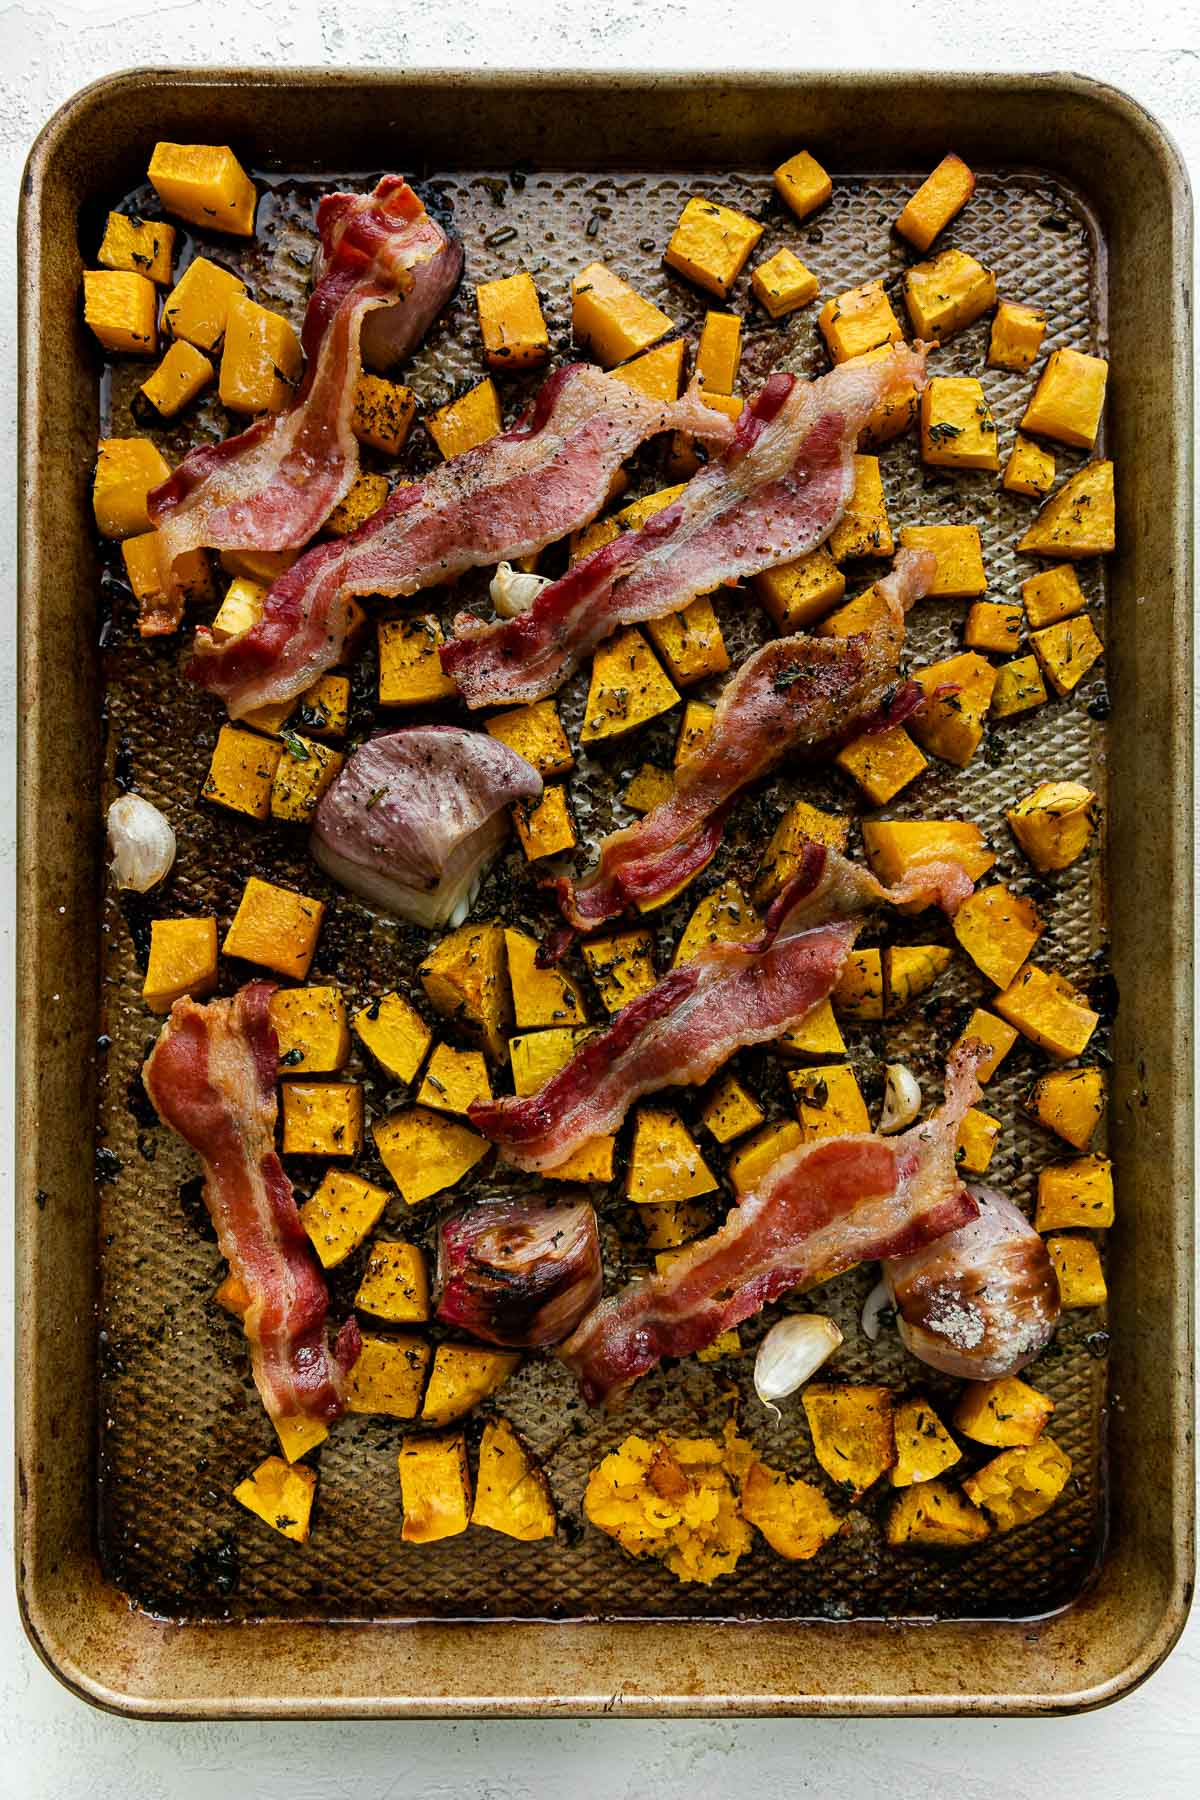 Cubed butternut squash, shallots, & garlic seasoned with olive oil & fresh herbs with bacon draped over top on a baking sheet after roasting. The baking sheet sits atop a white textured surface.